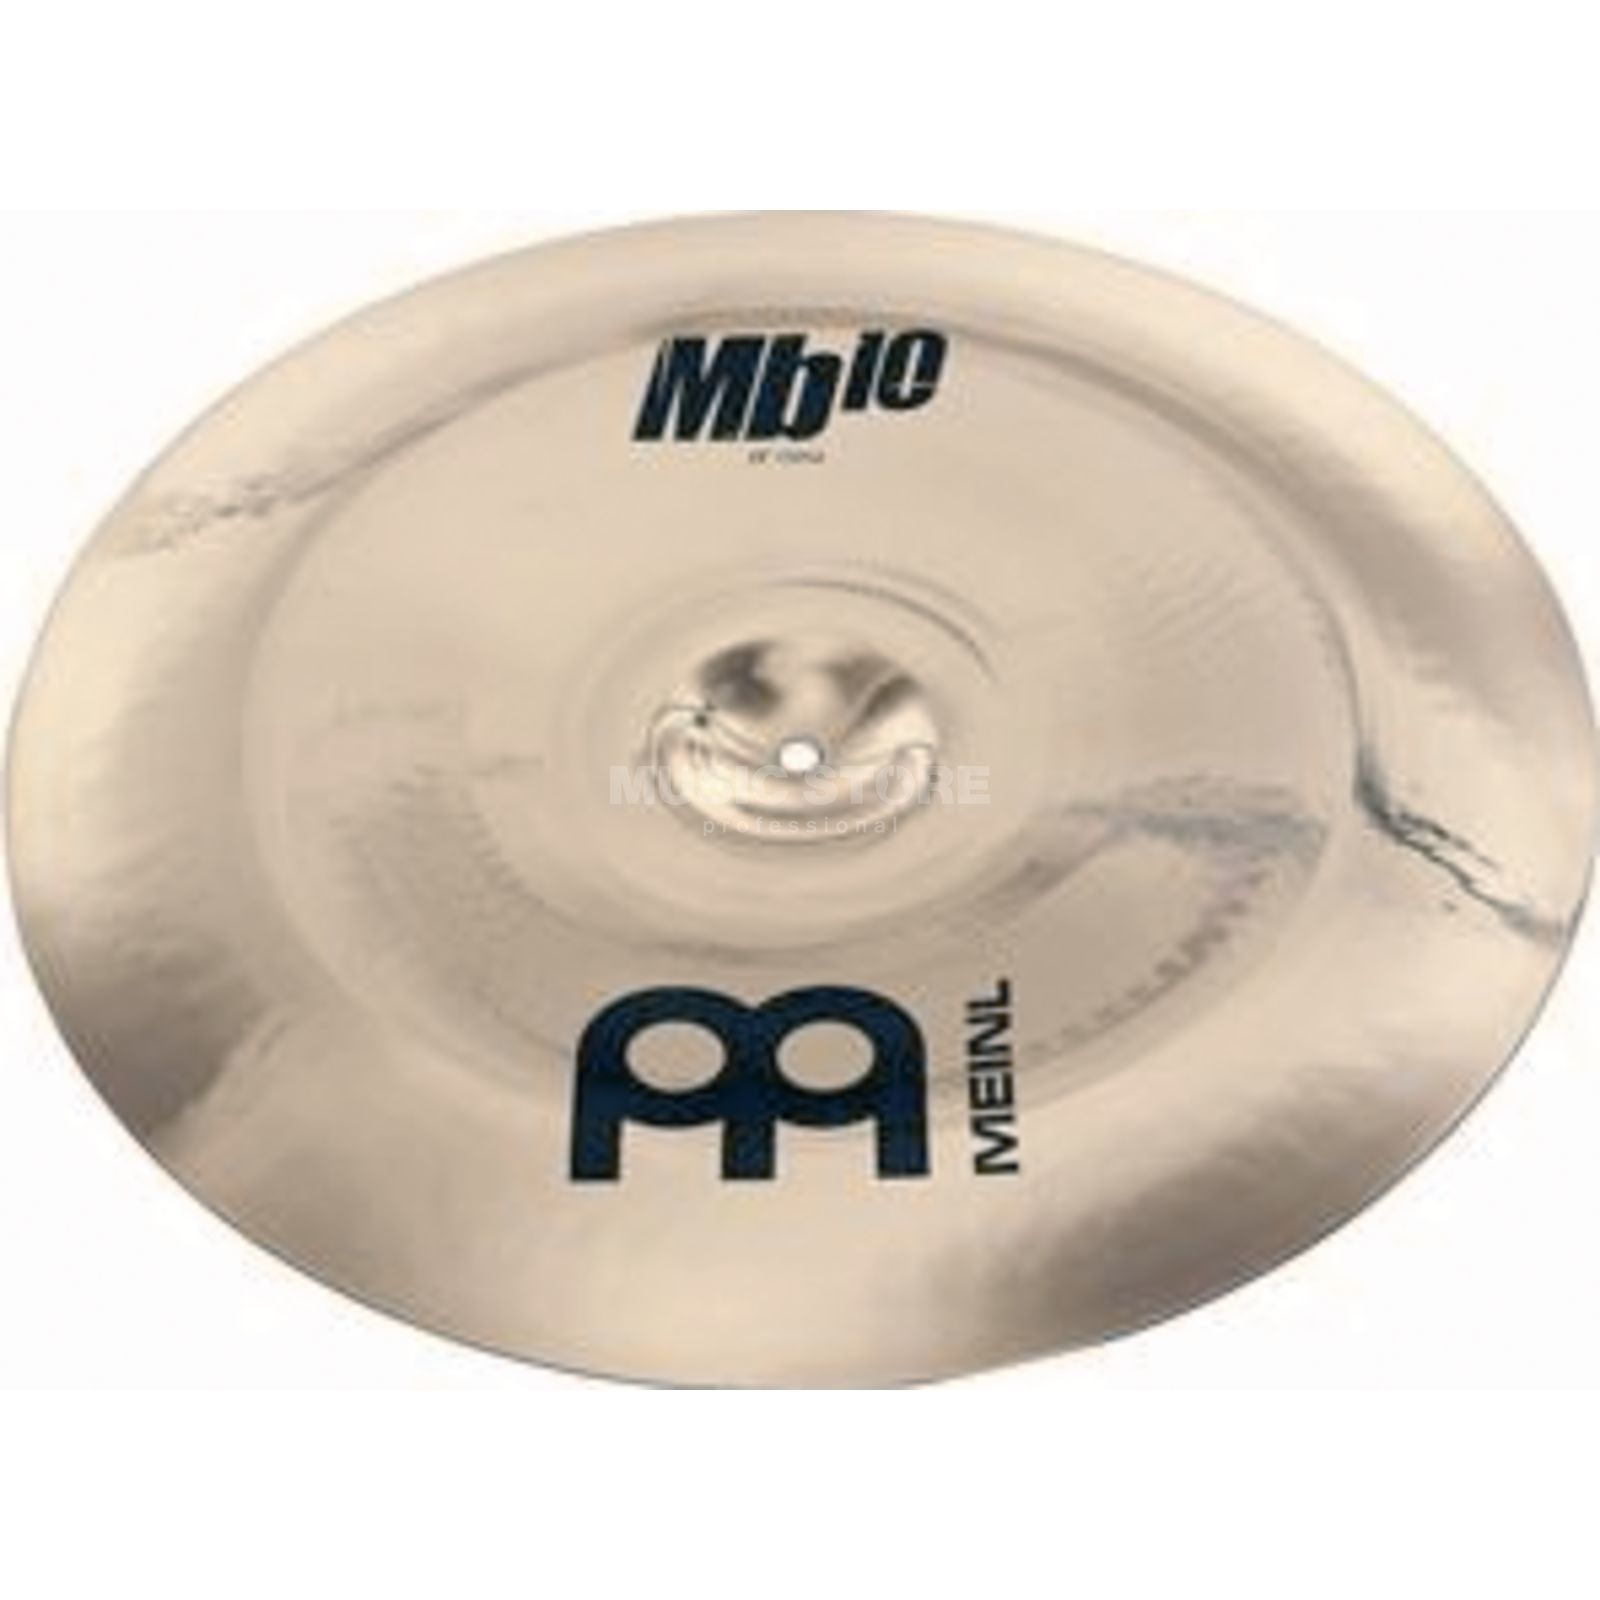 "Meinl MB10 China 17"" MB10-17CH-B, Brilliant Finish Imagem do produto"